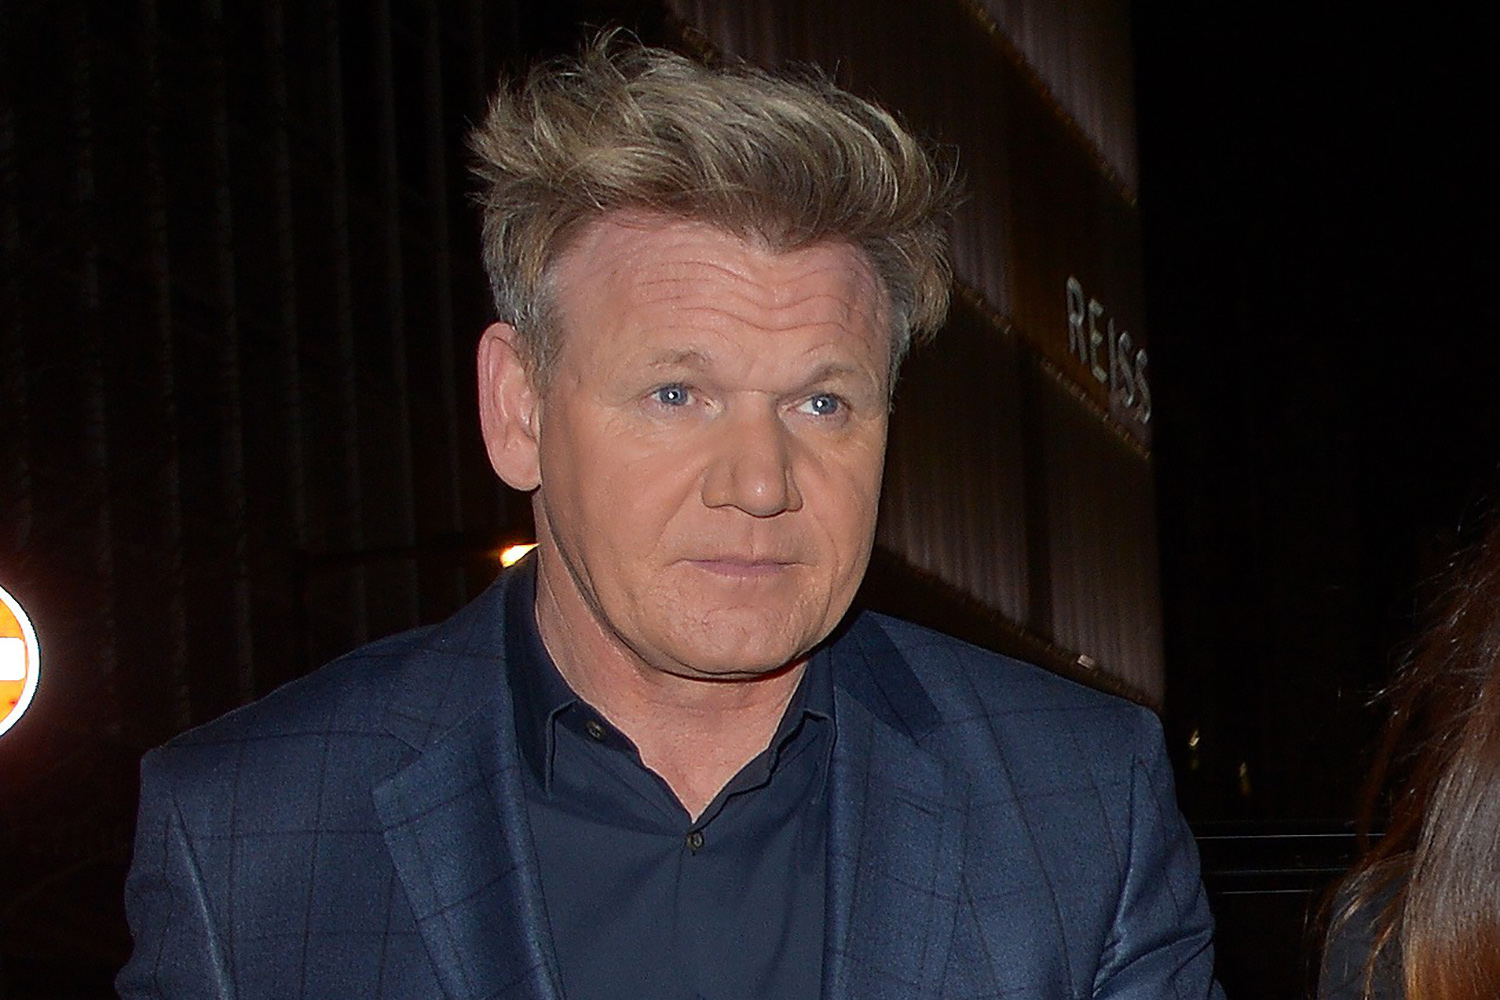 Gordon Ramsay branded 'hypocrite' for sharing 'stay at home' message after Cornwall move